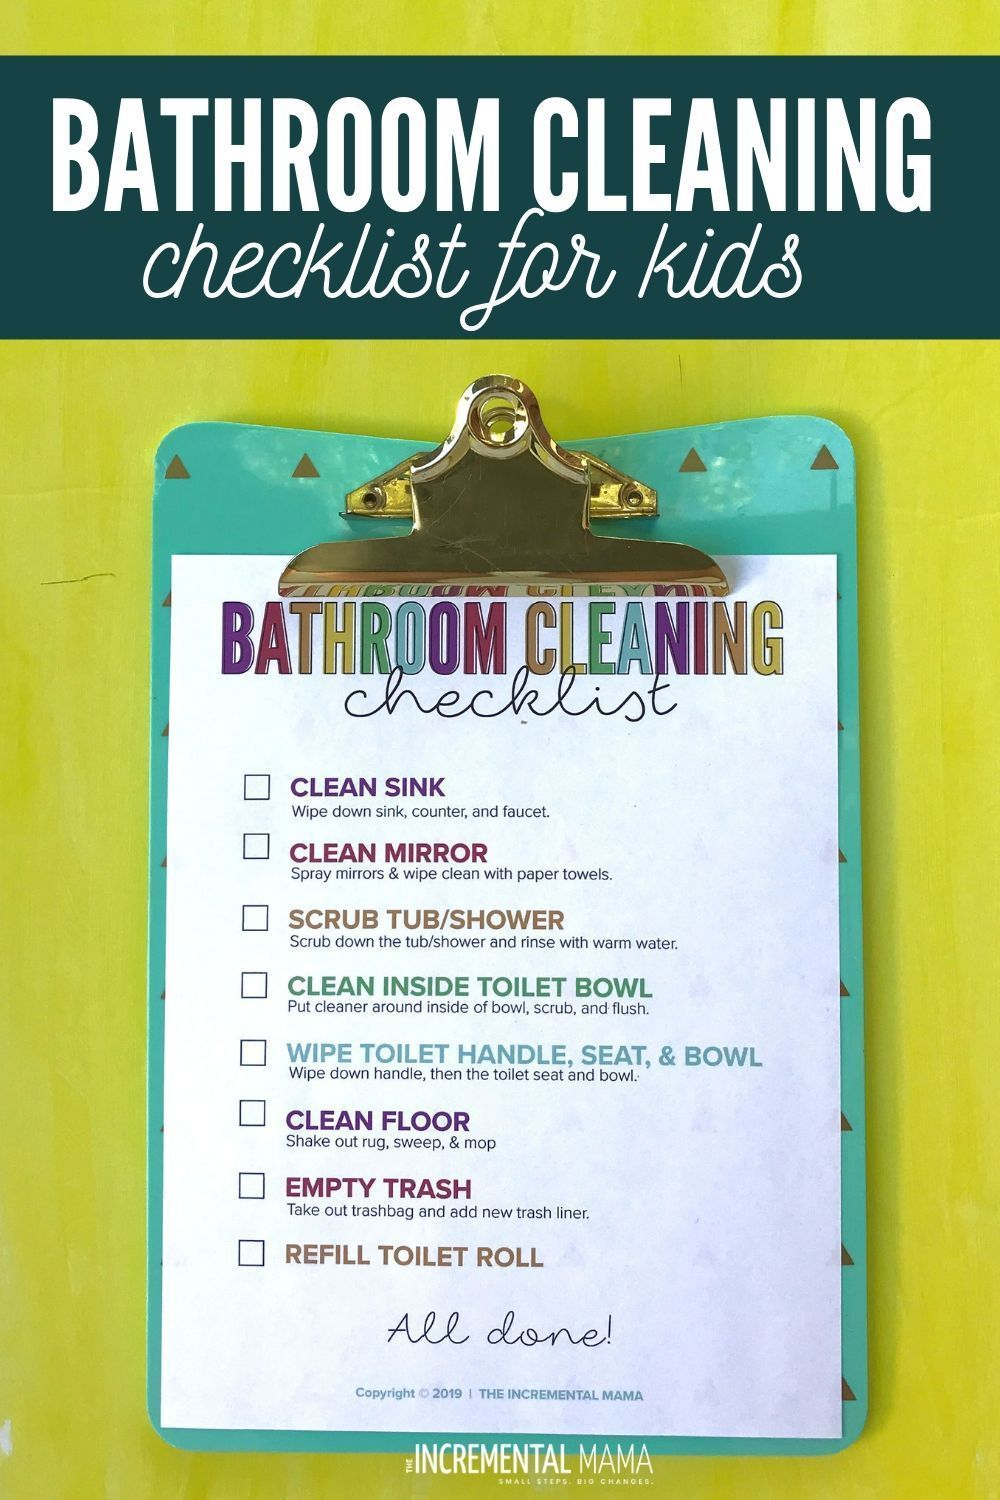 Bathroom Cleaning Checklist for Kids | Cleaning checklist ...